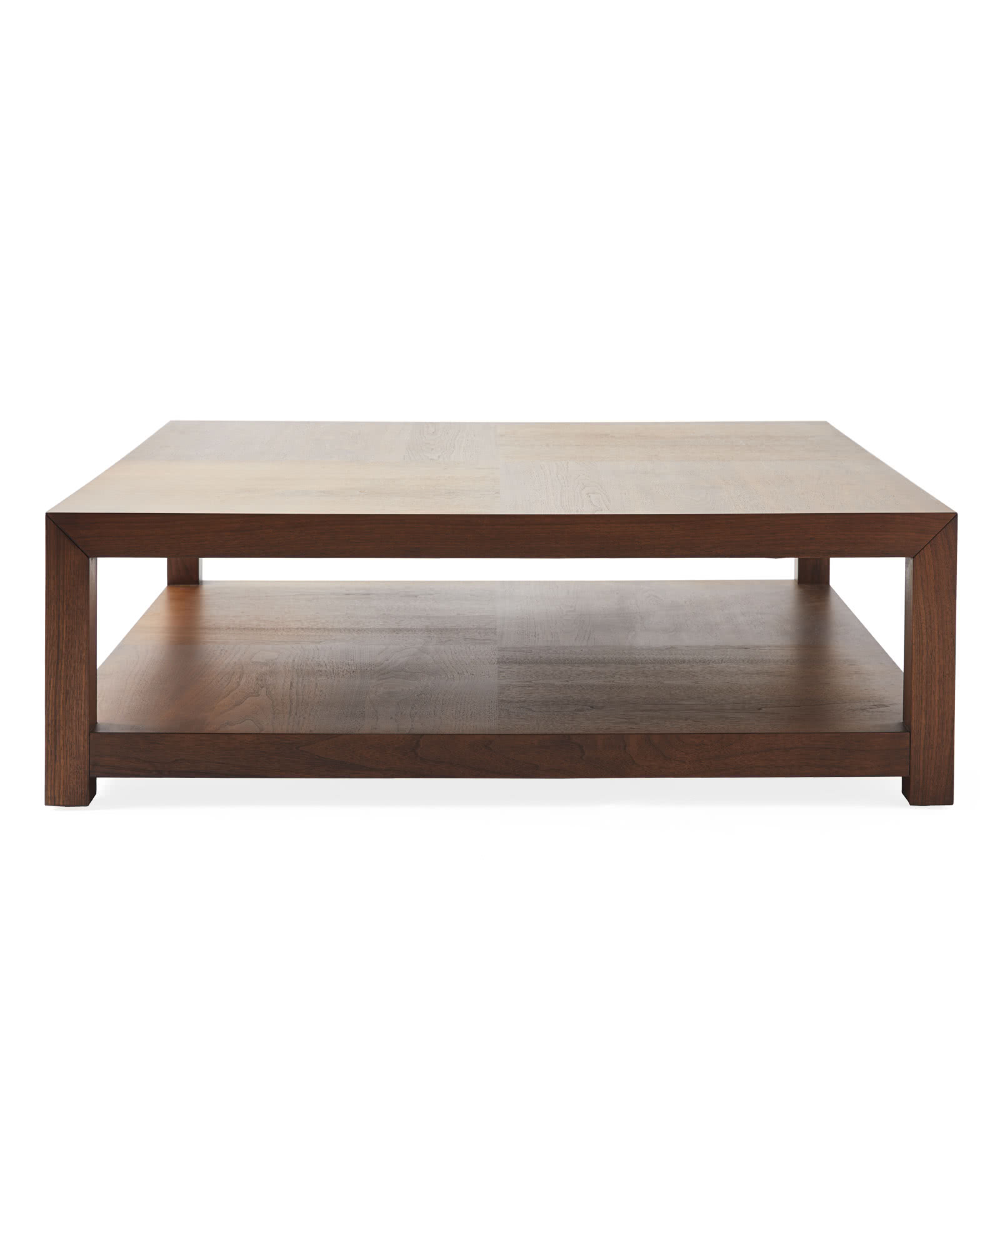 Lyon Coffee Table Coffee Table Large Square Coffee Table Coffee Table Wood [ 1250 x 1000 Pixel ]